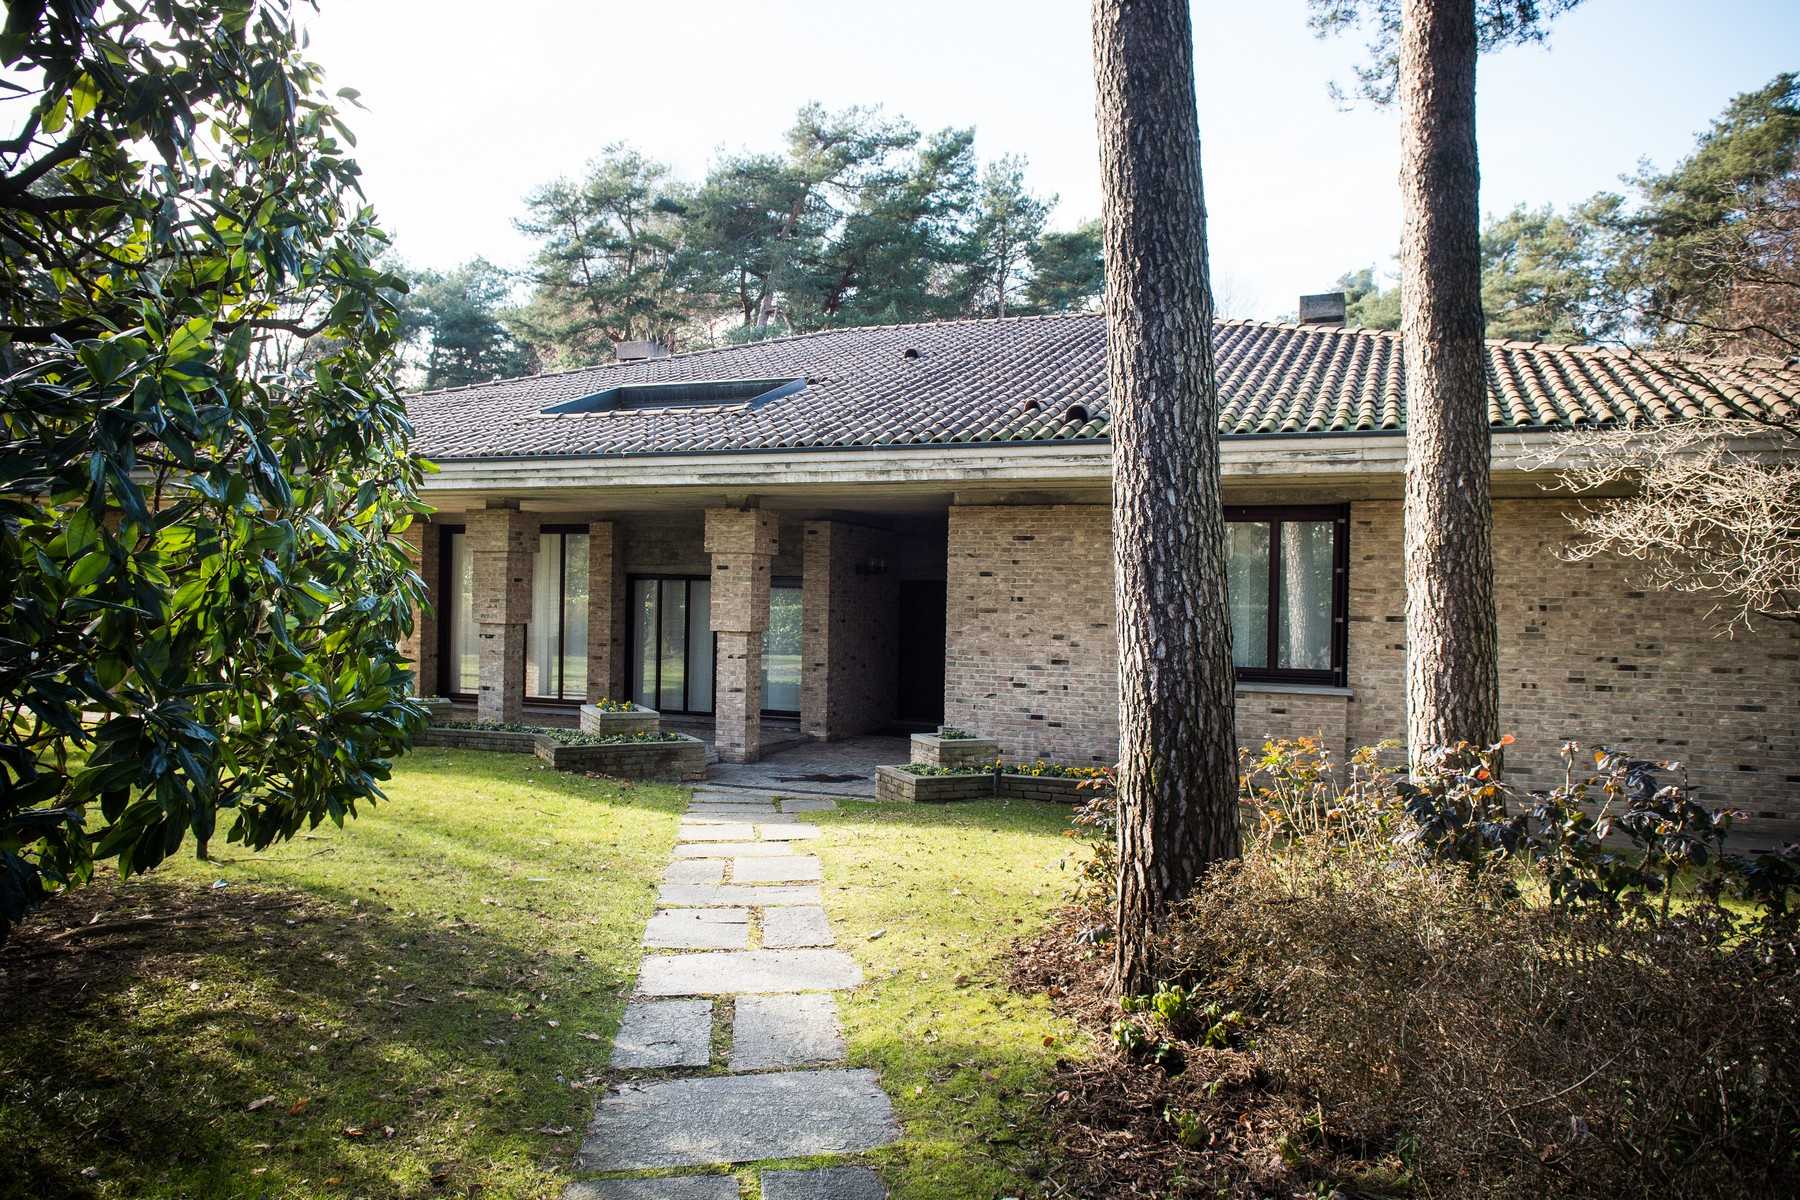 Additional photo for property listing at Modern villa with dépendance in Golf Club Pinetina Appiano Gentile Appiano Gentile, Como 22070 Italy